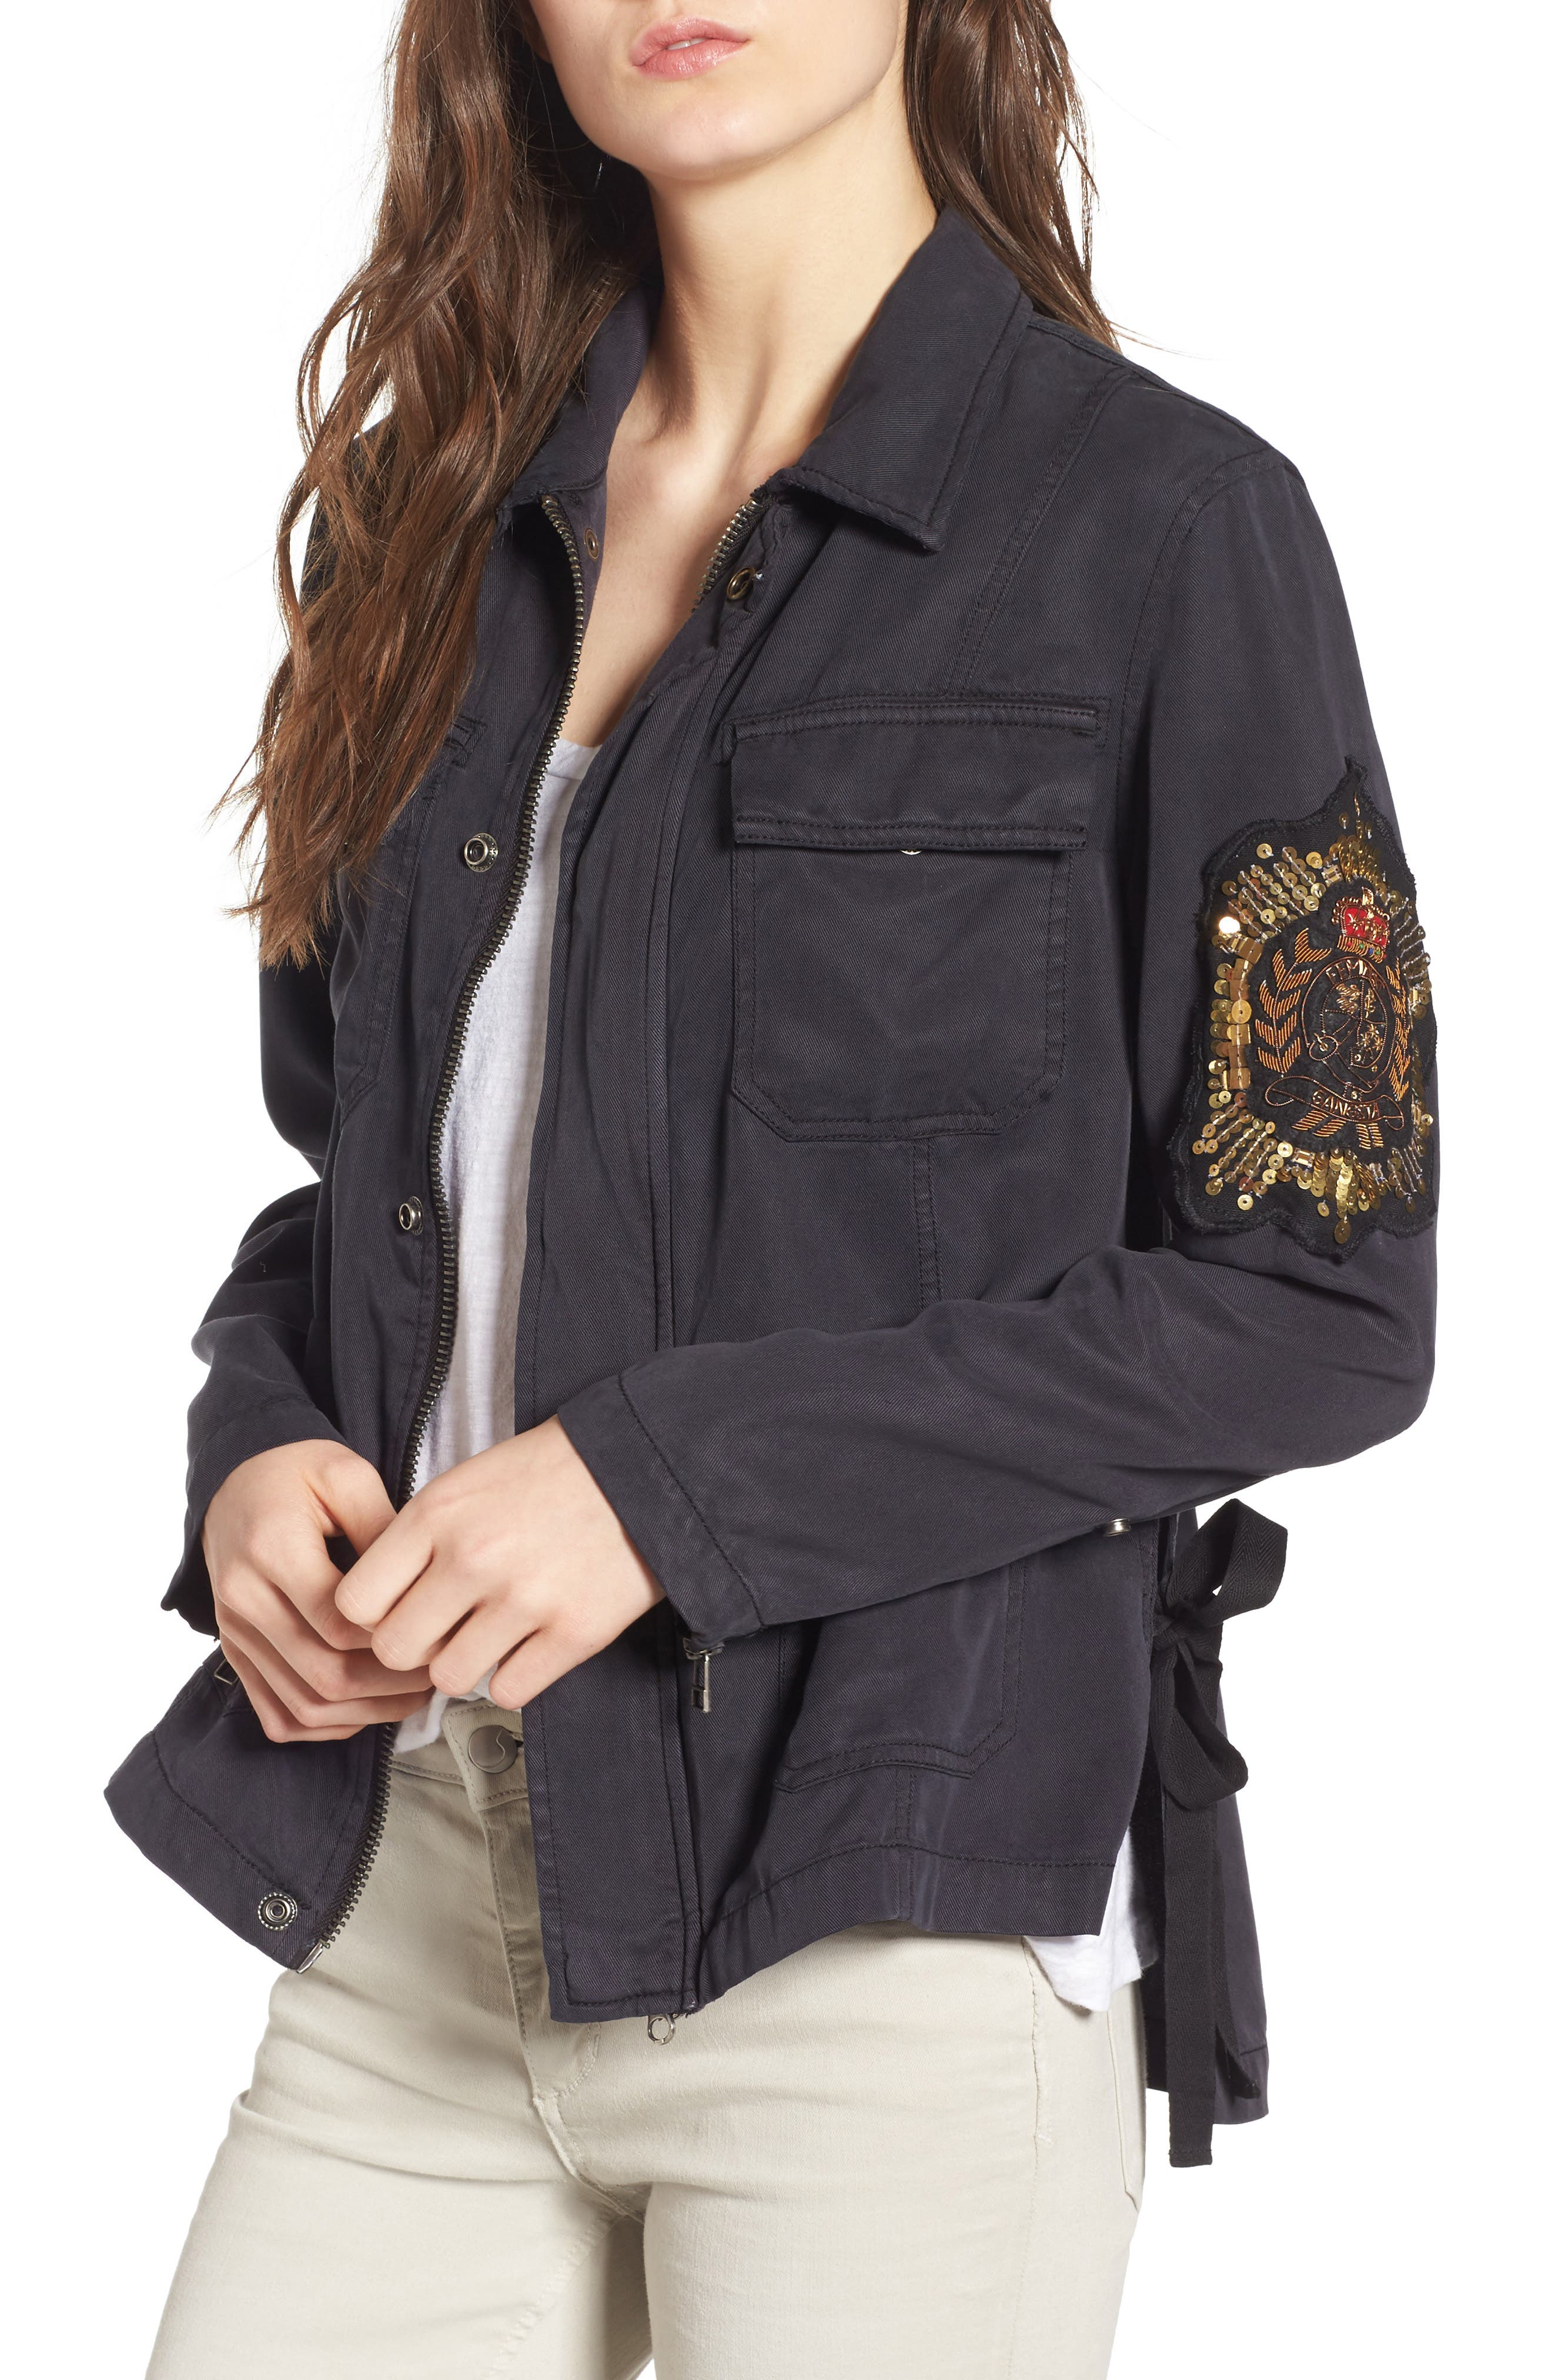 Alternate Image 1 Selected - Pam & Gela Cargo Jacket with Crest Patch